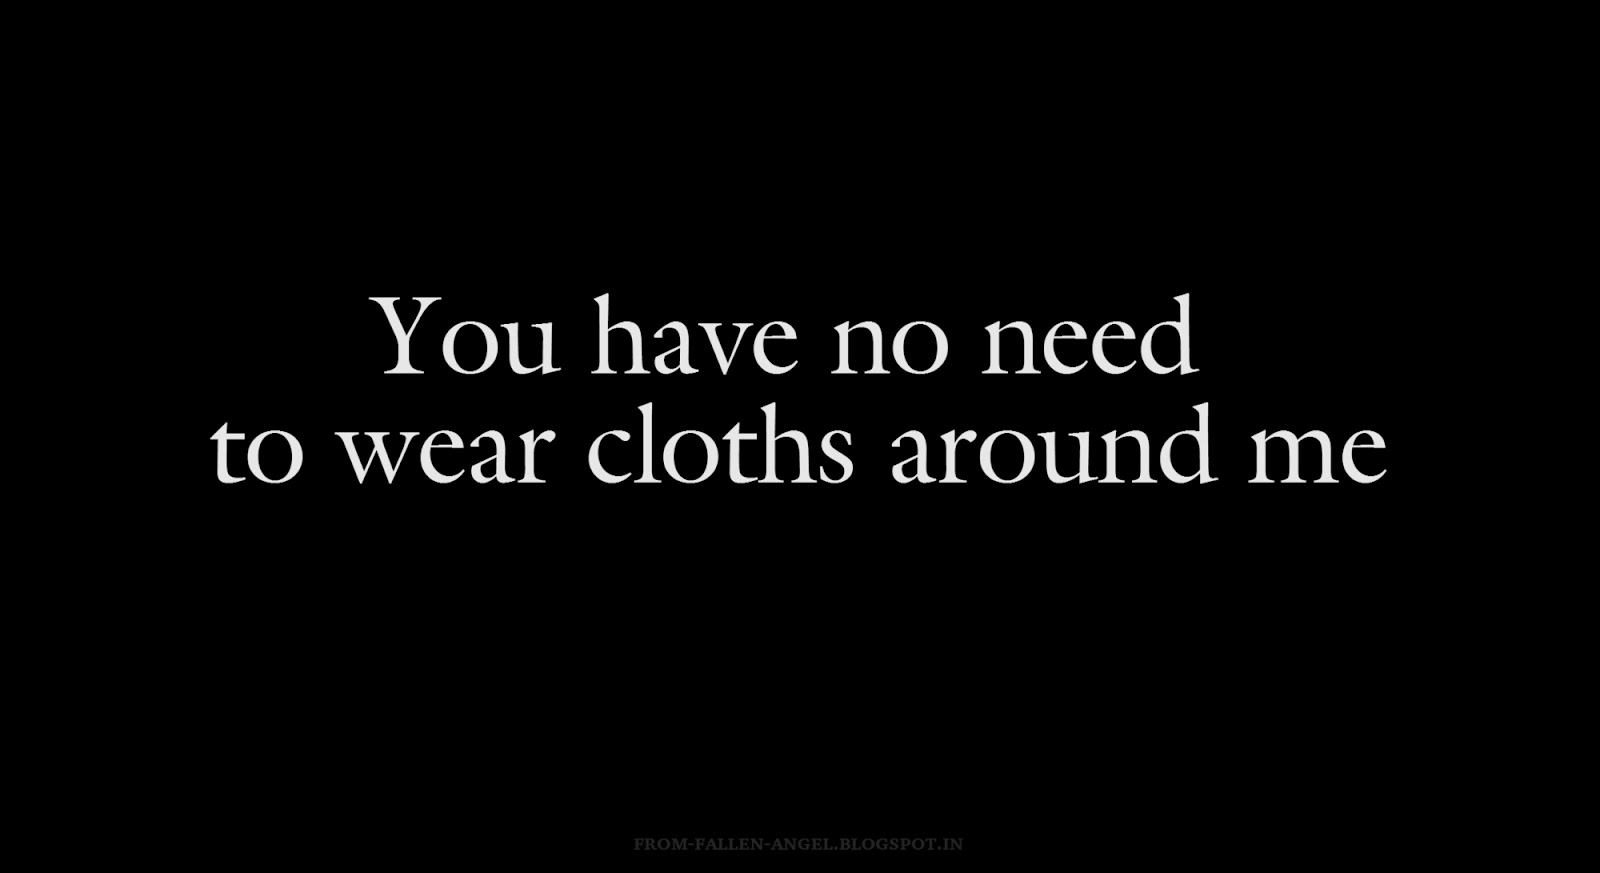 You have no need to wear cloths around me